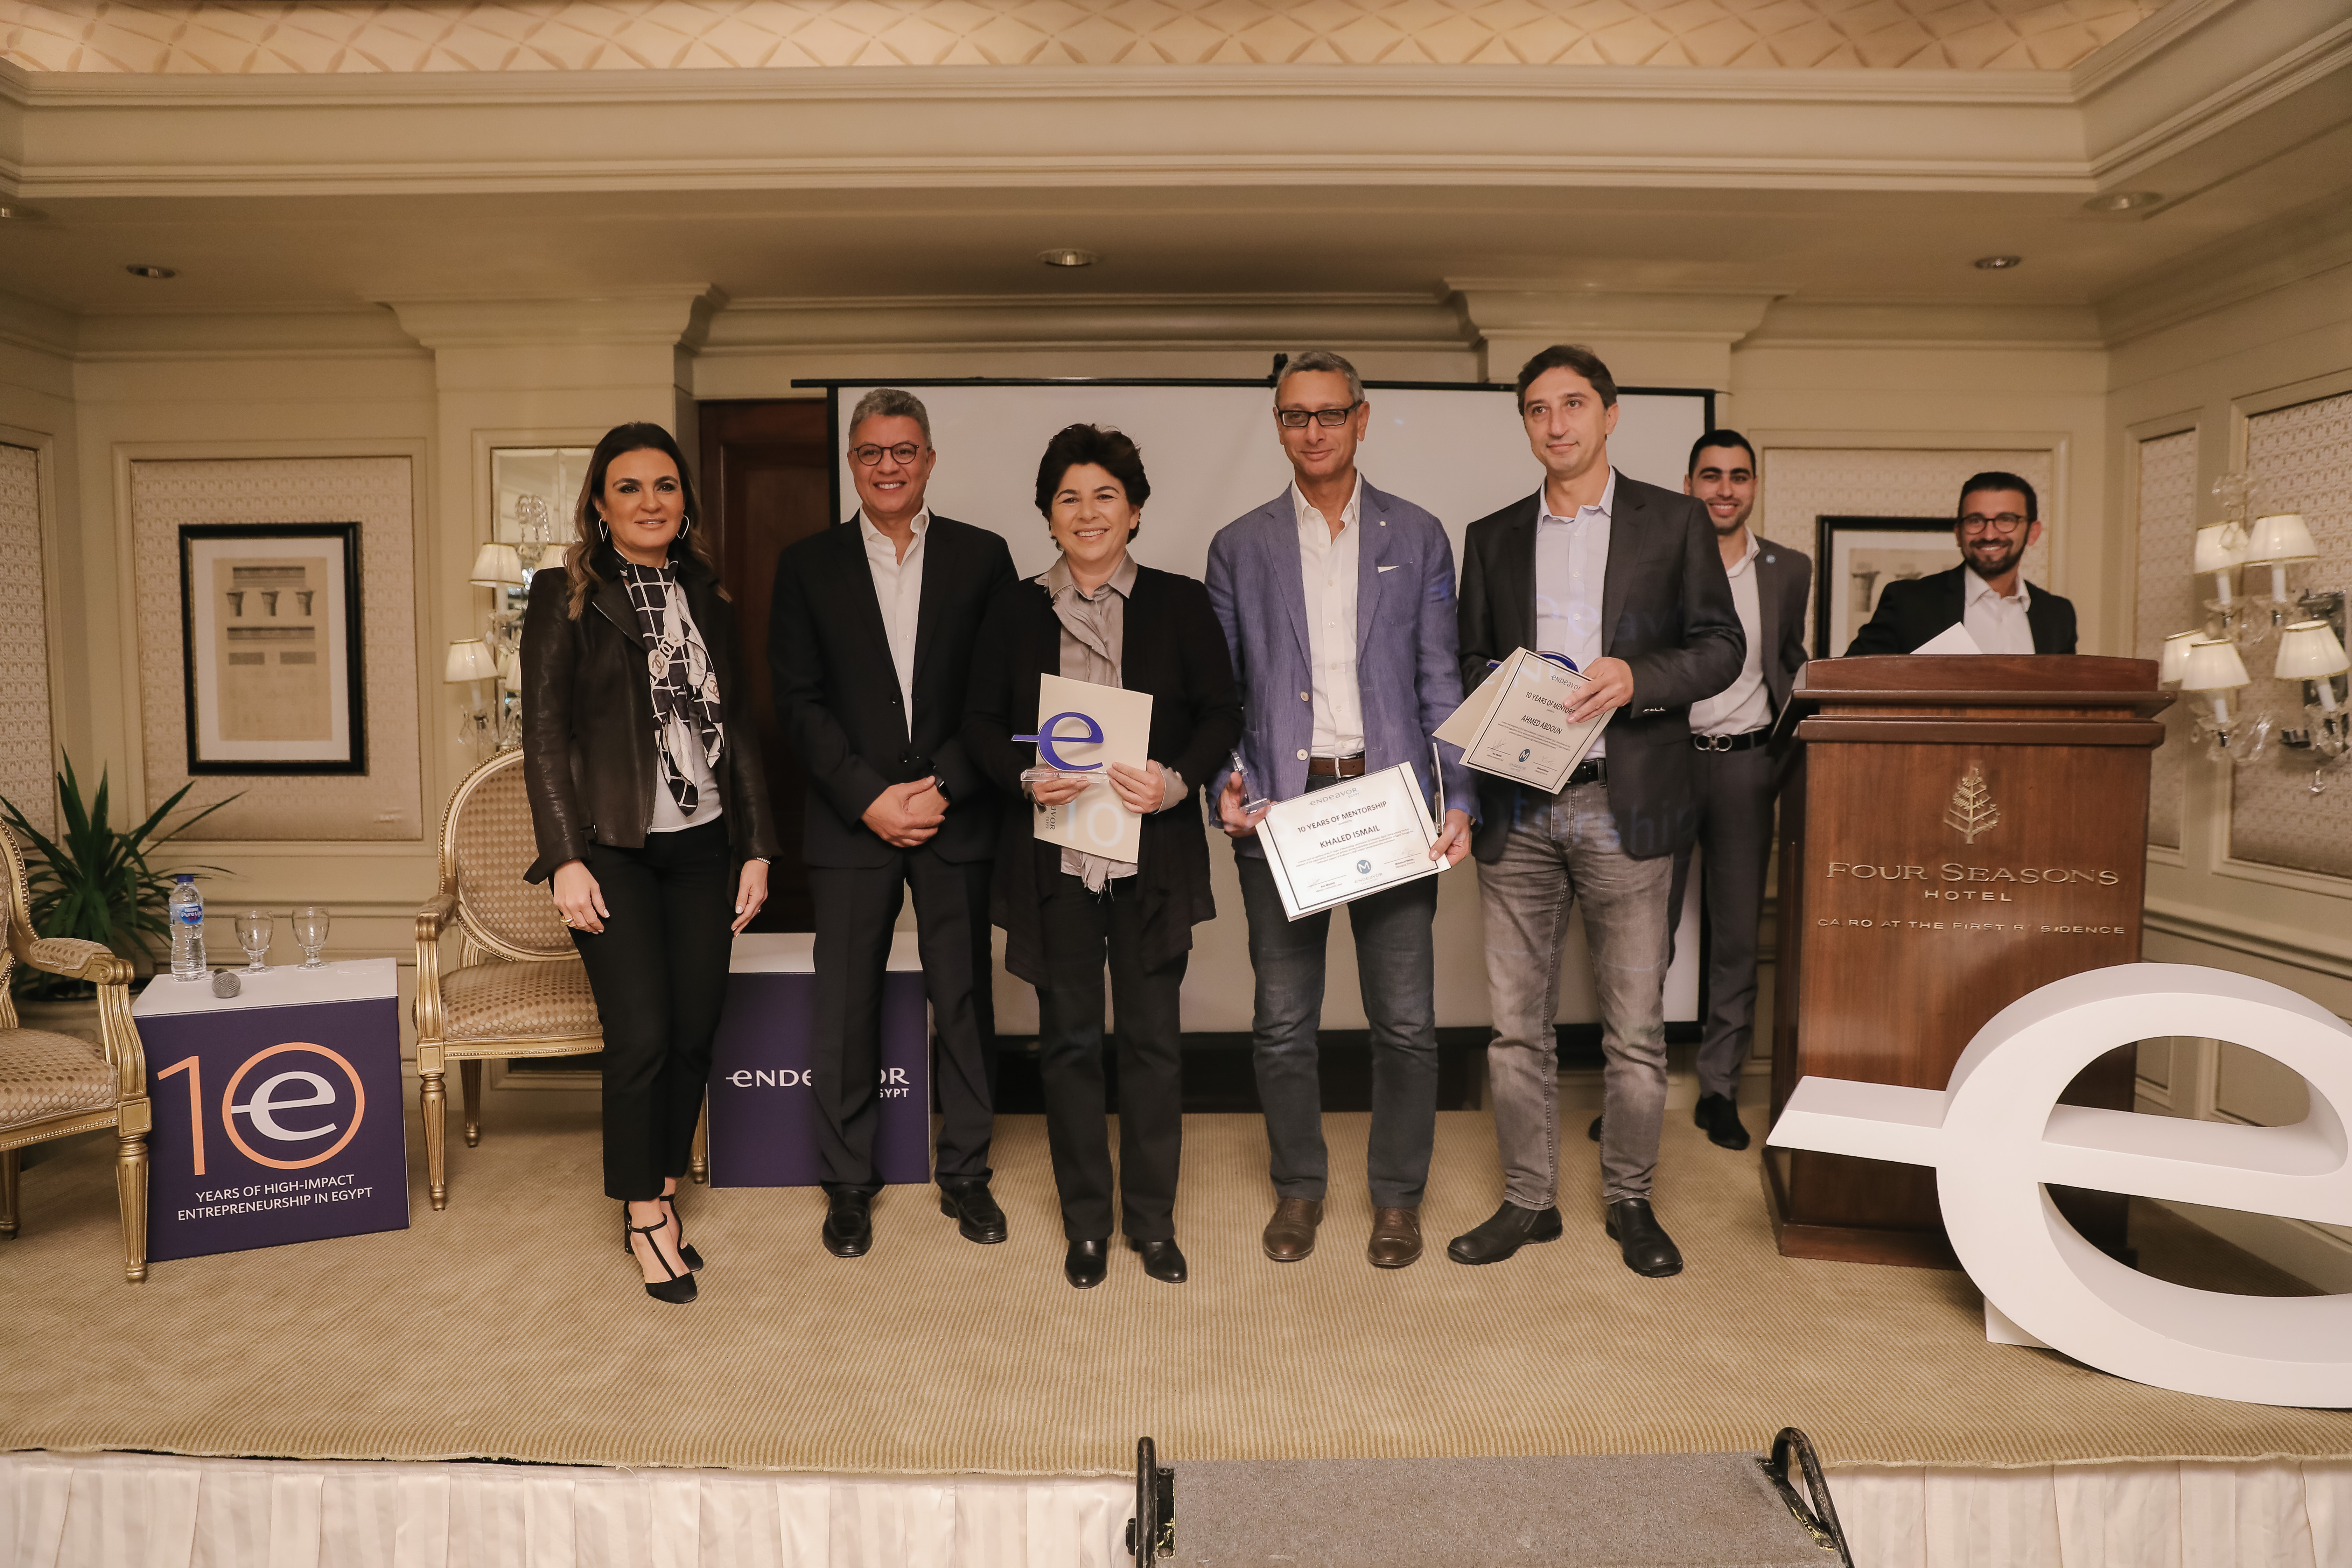 Endeavor Mentors Khaled Ismail, Randa Abdou and Ahmed Abdoun received 10 Years of Mentorship Awards.